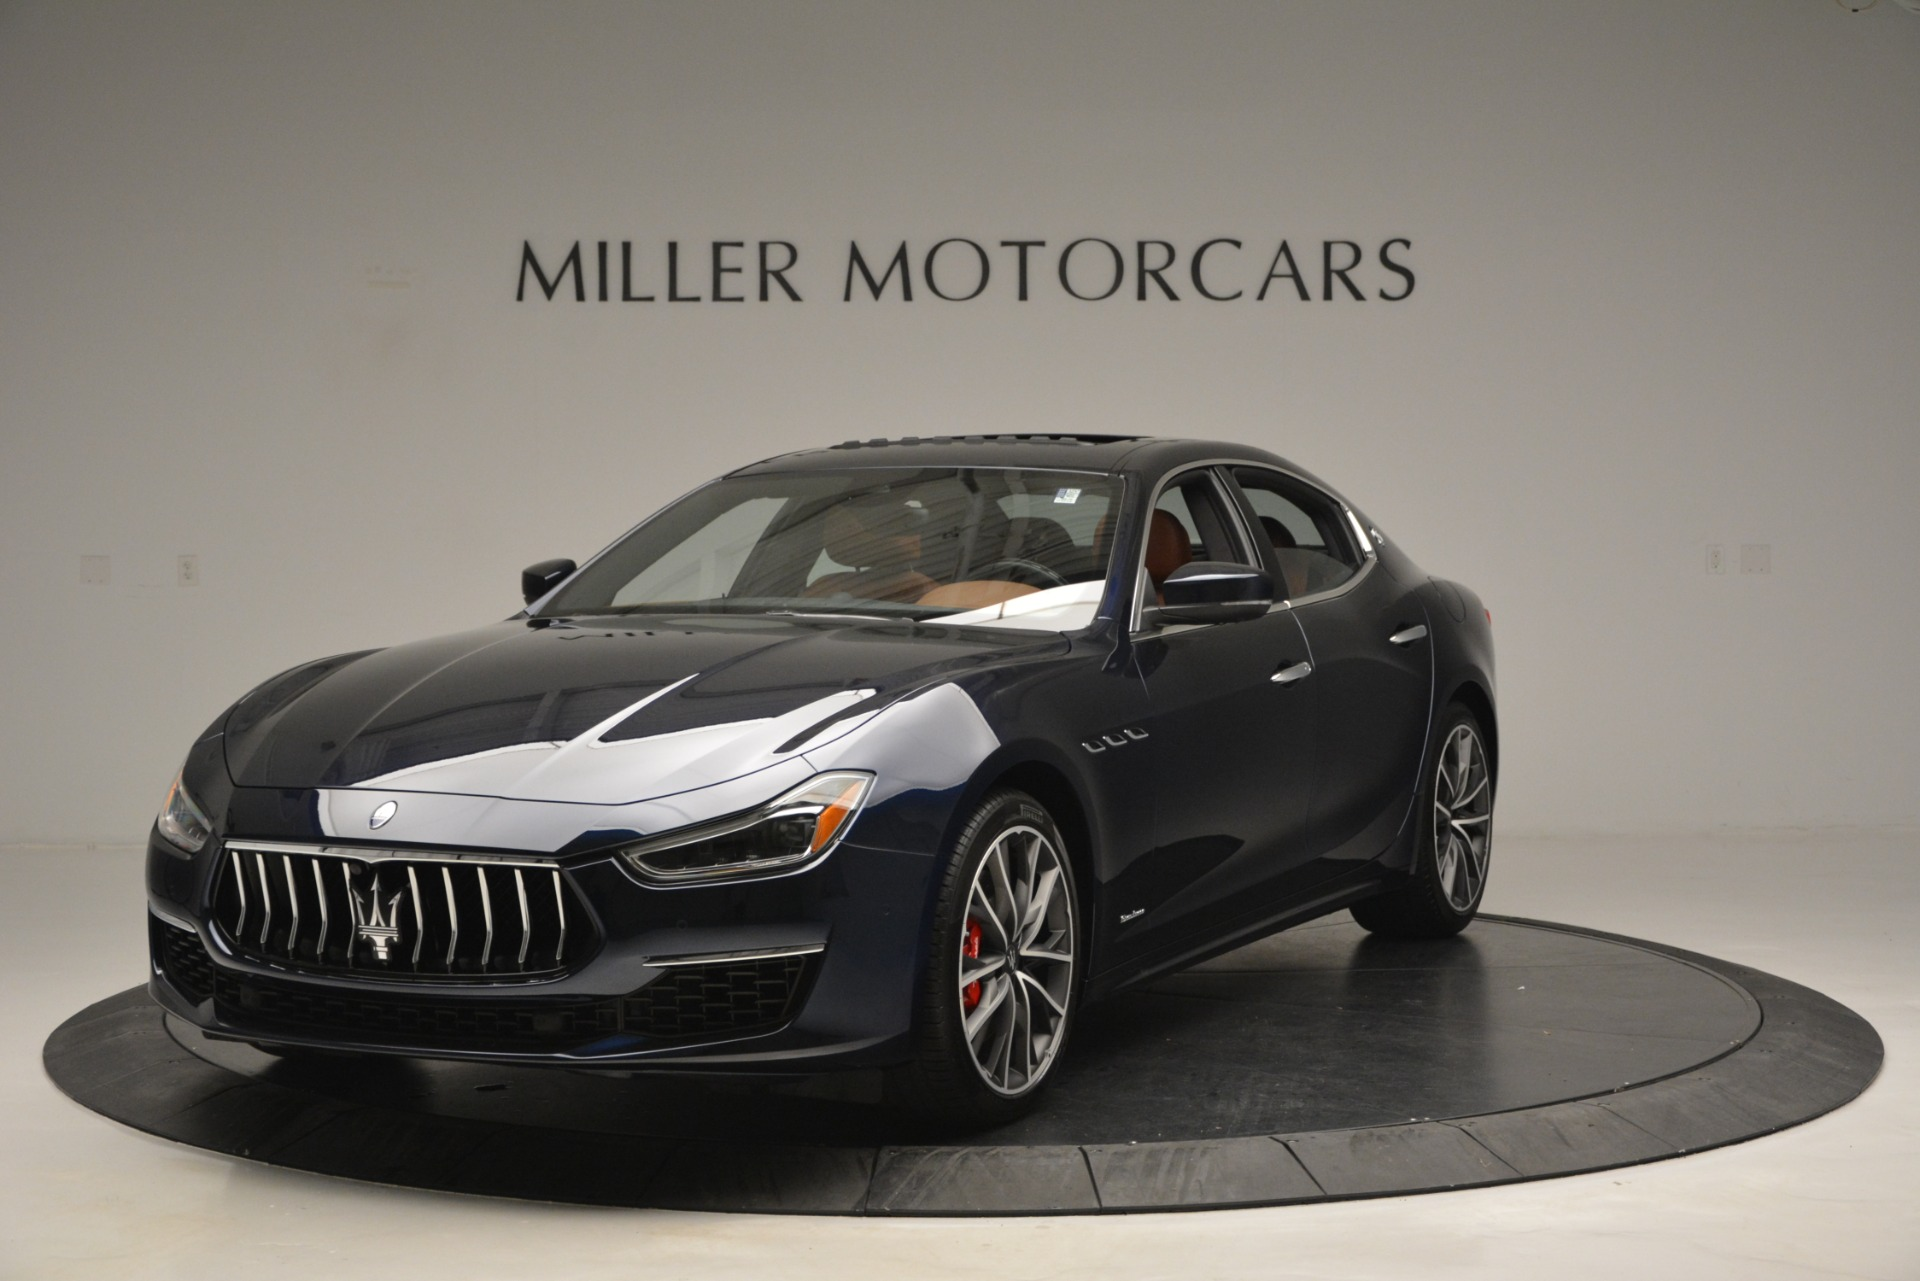 New 2019 Maserati Ghibli S Q4 GranLusso For Sale In Greenwich, CT 2882_main